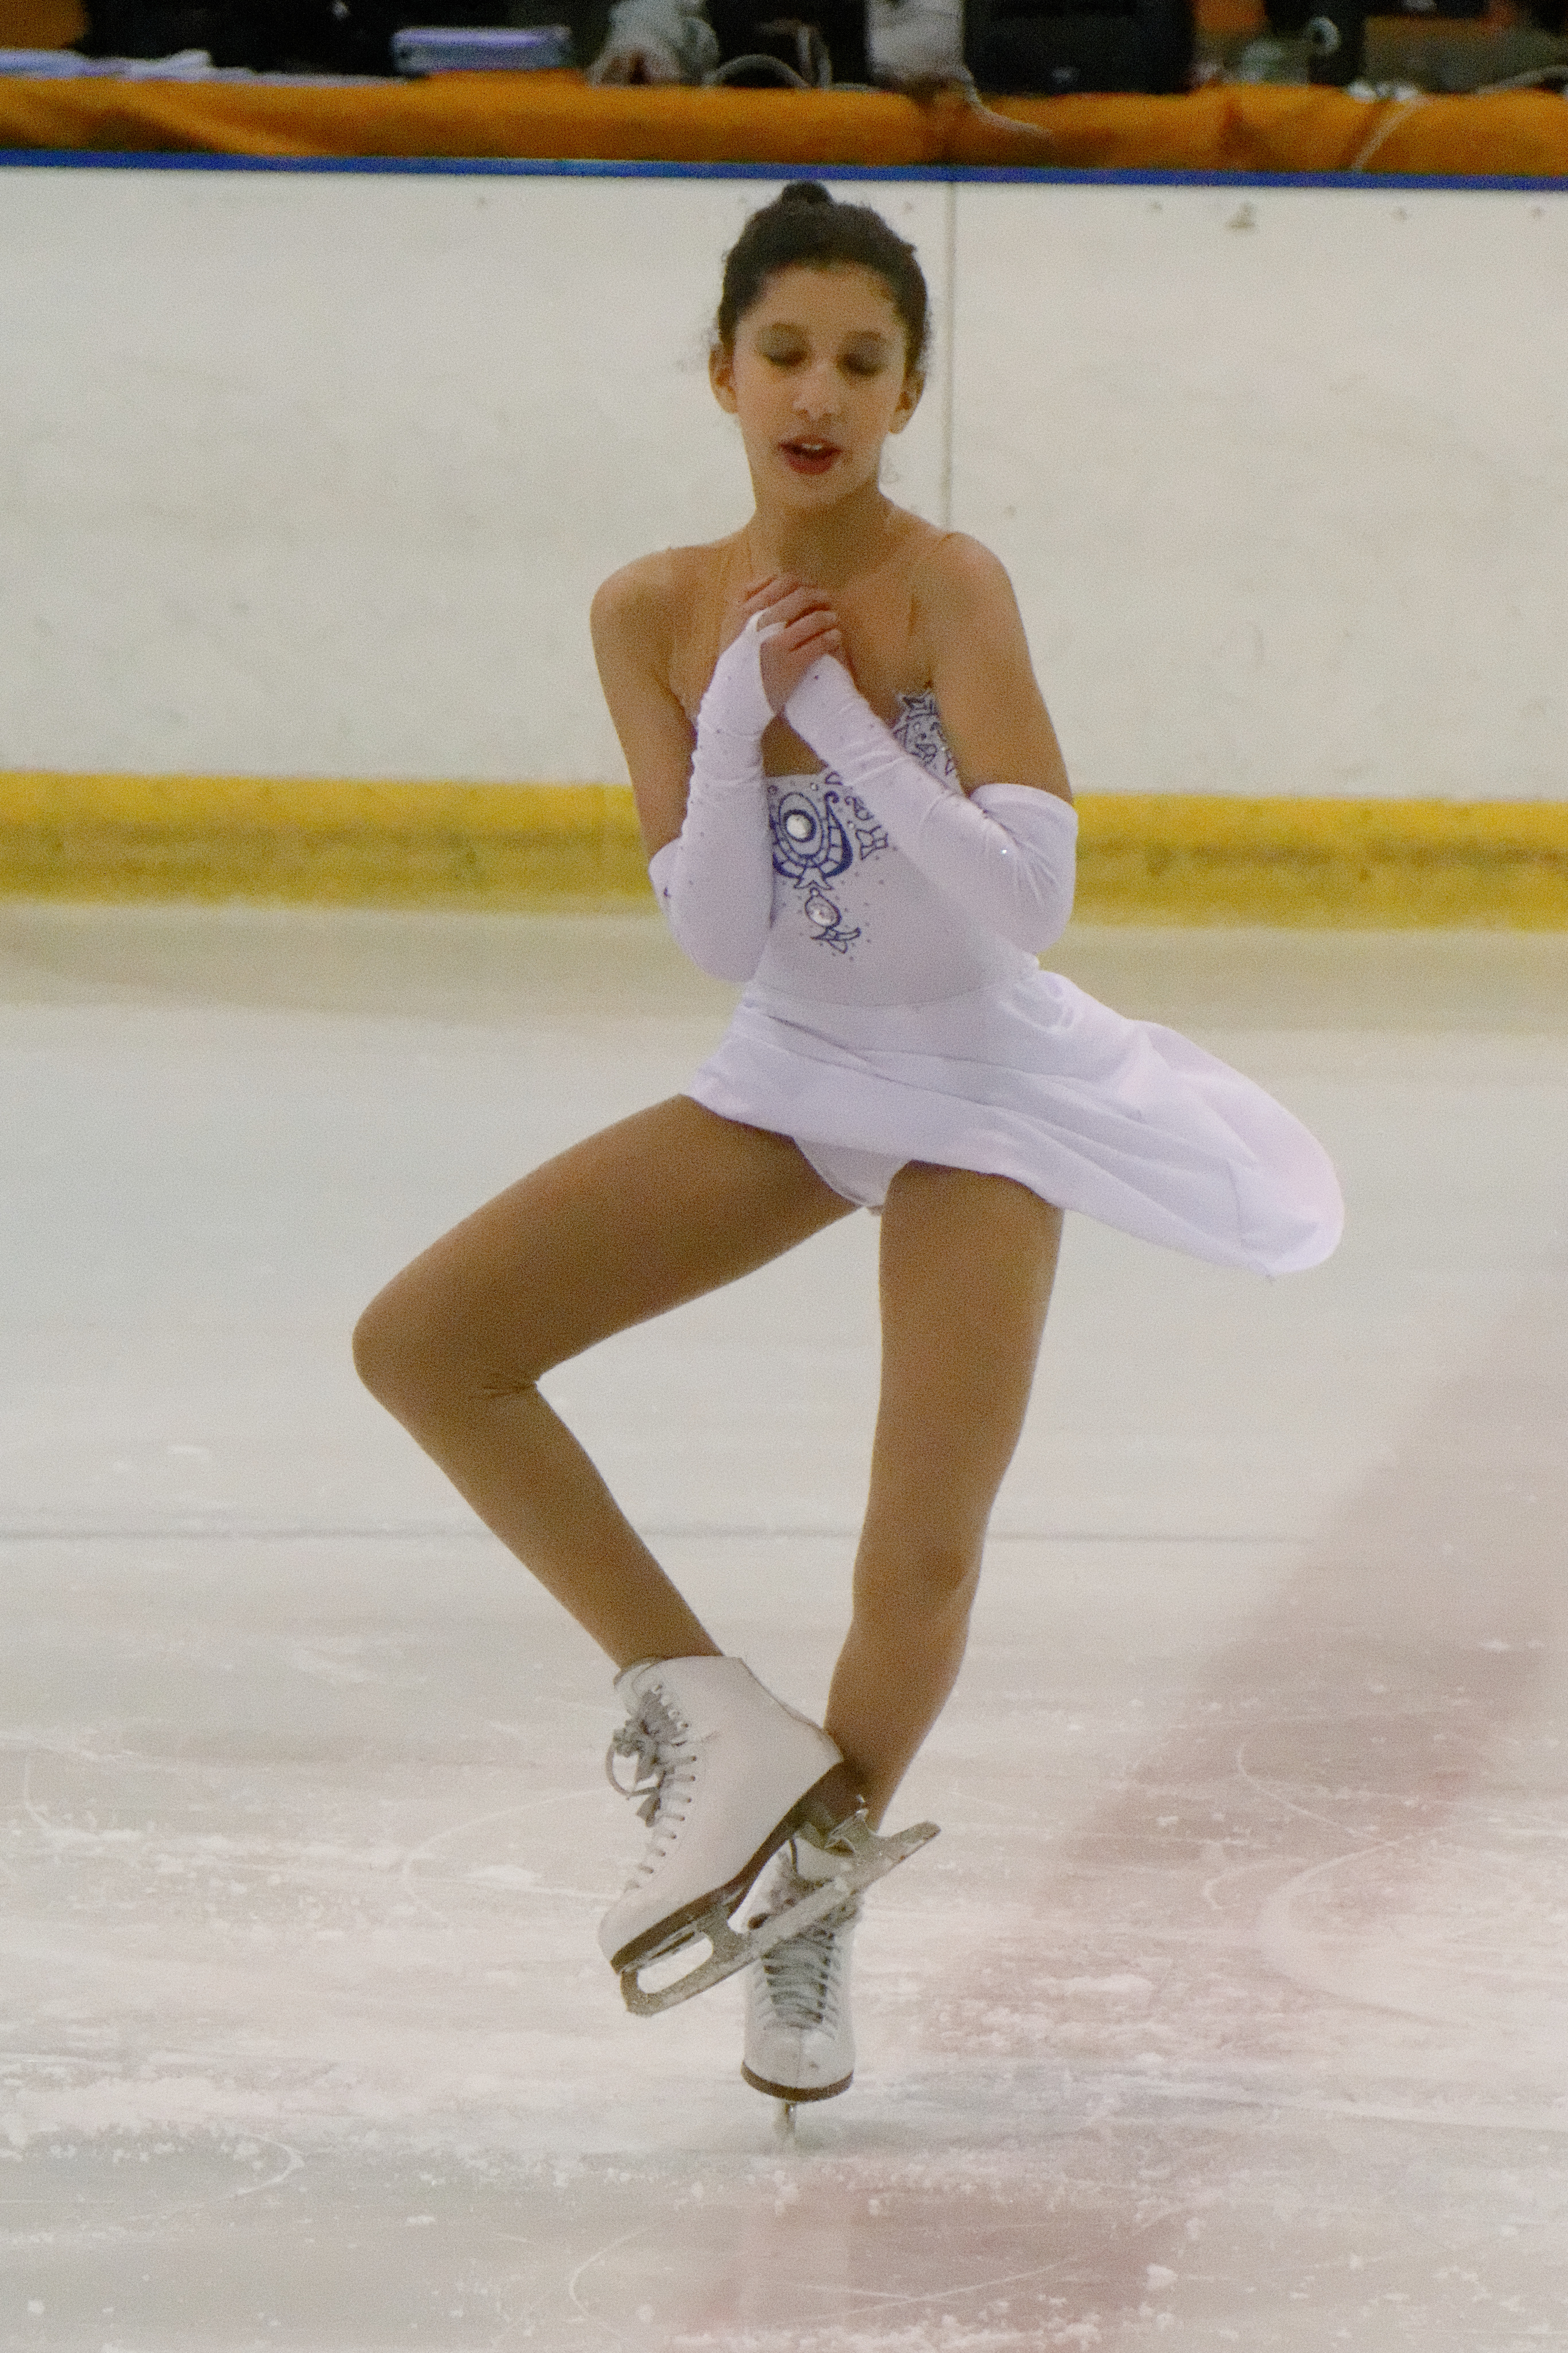 Upskirt figure skating